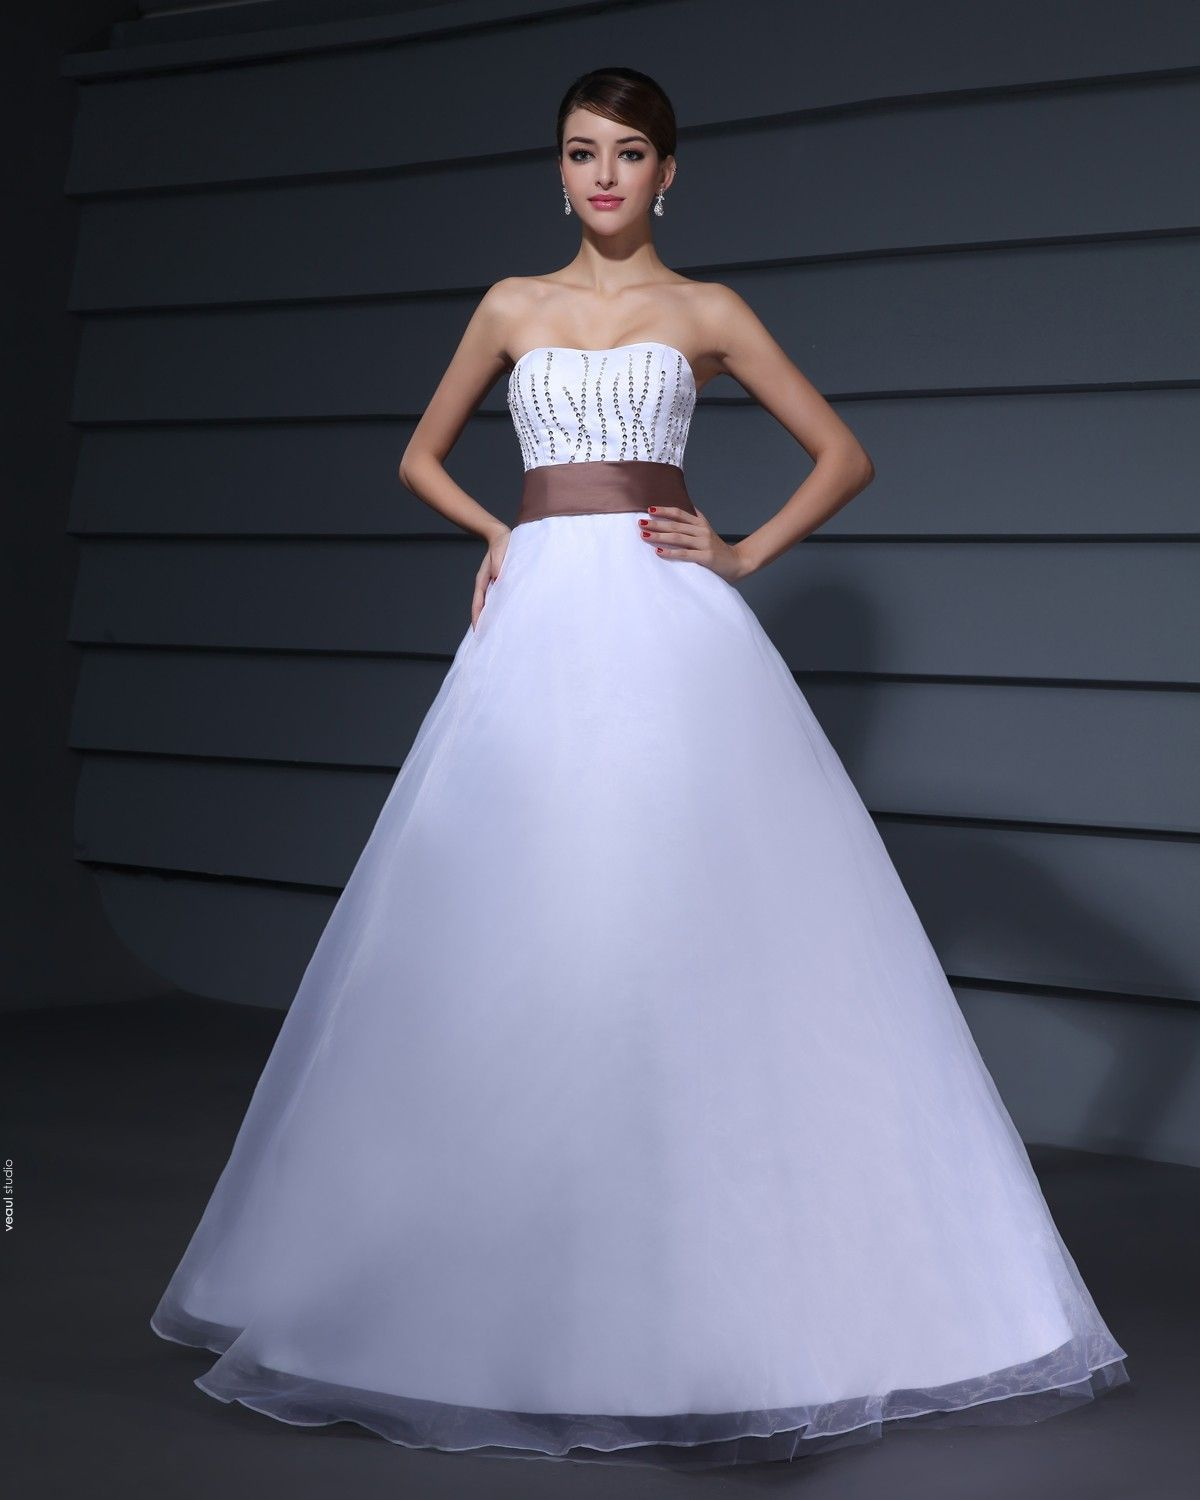 Designer Romantic Strapless Ball Gown Tulle Taffeta Prom Dresses